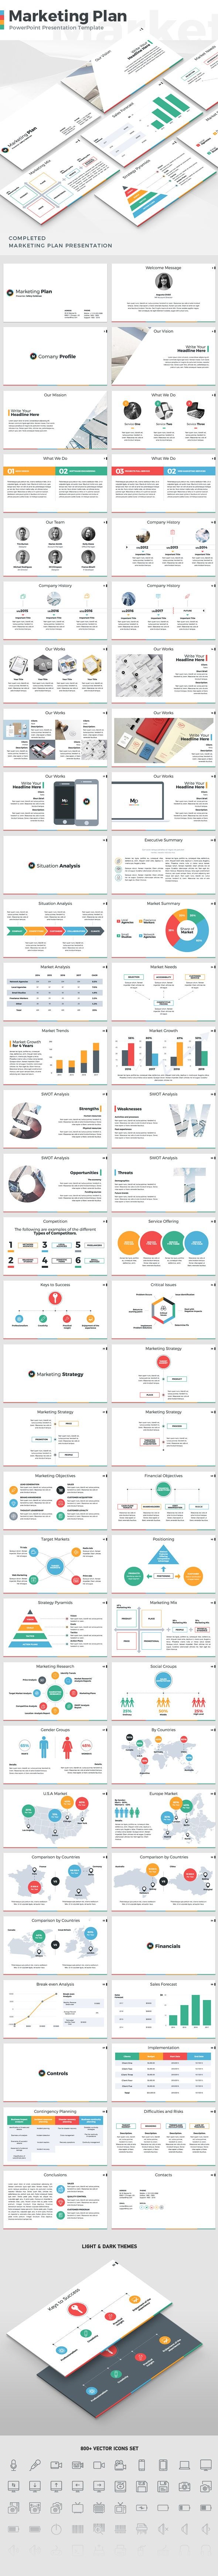 Marketing Plan - PowerPoint Presentation Template